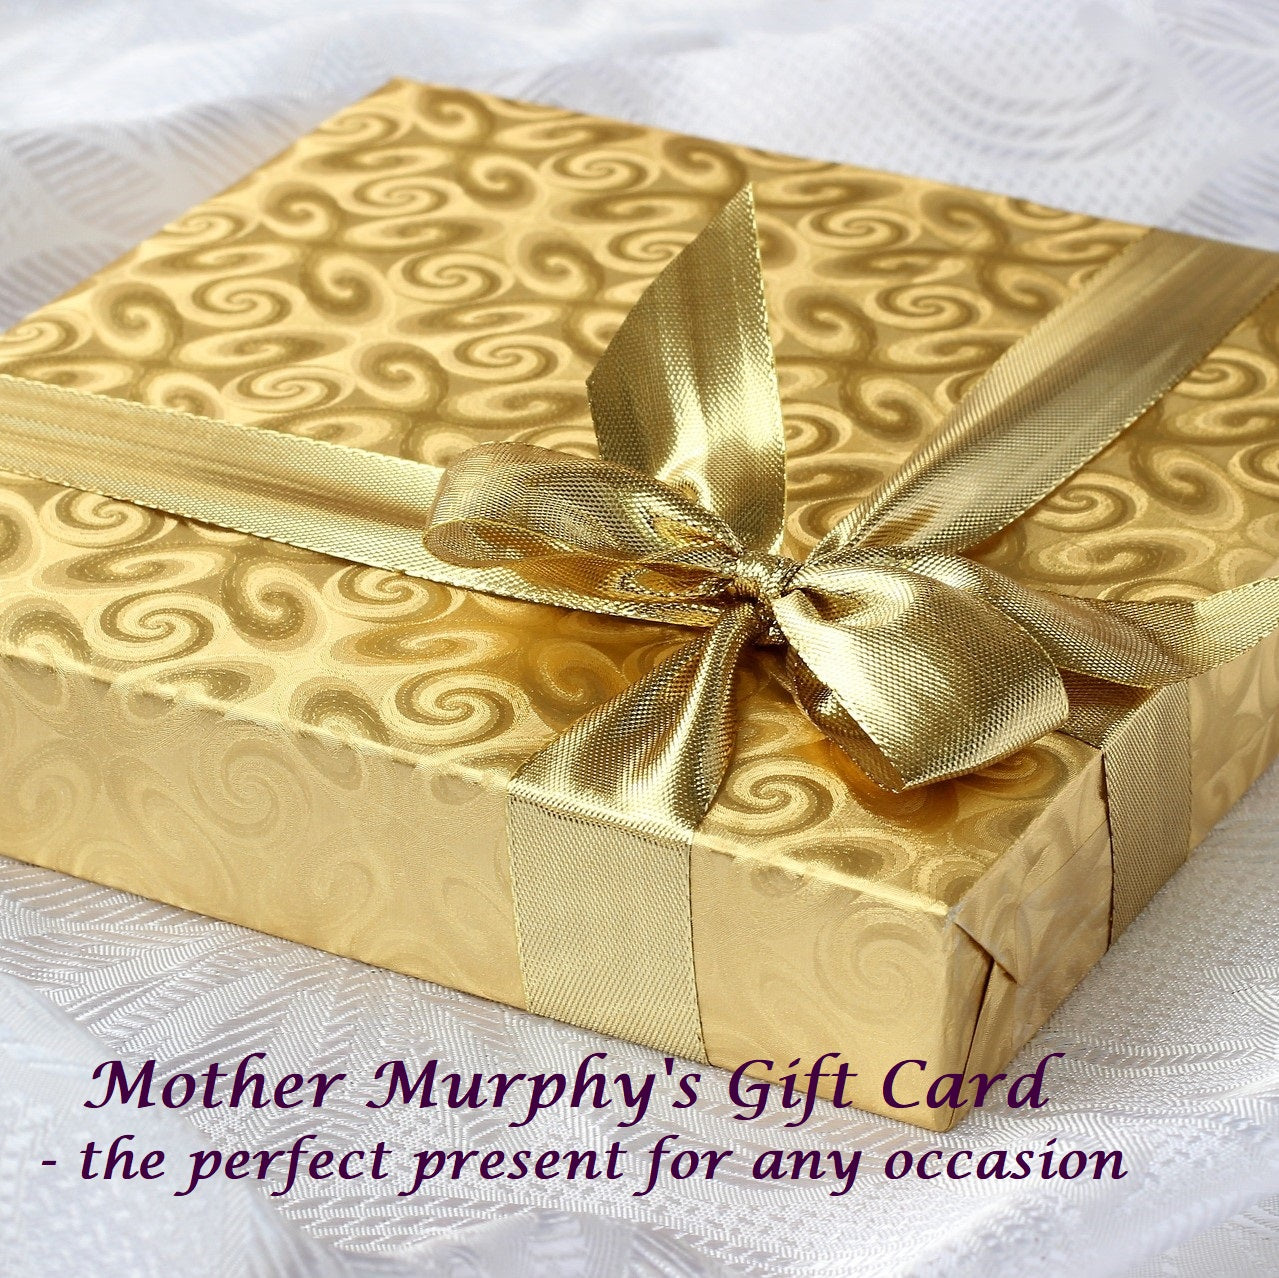 Mother Murphy's Gift Card